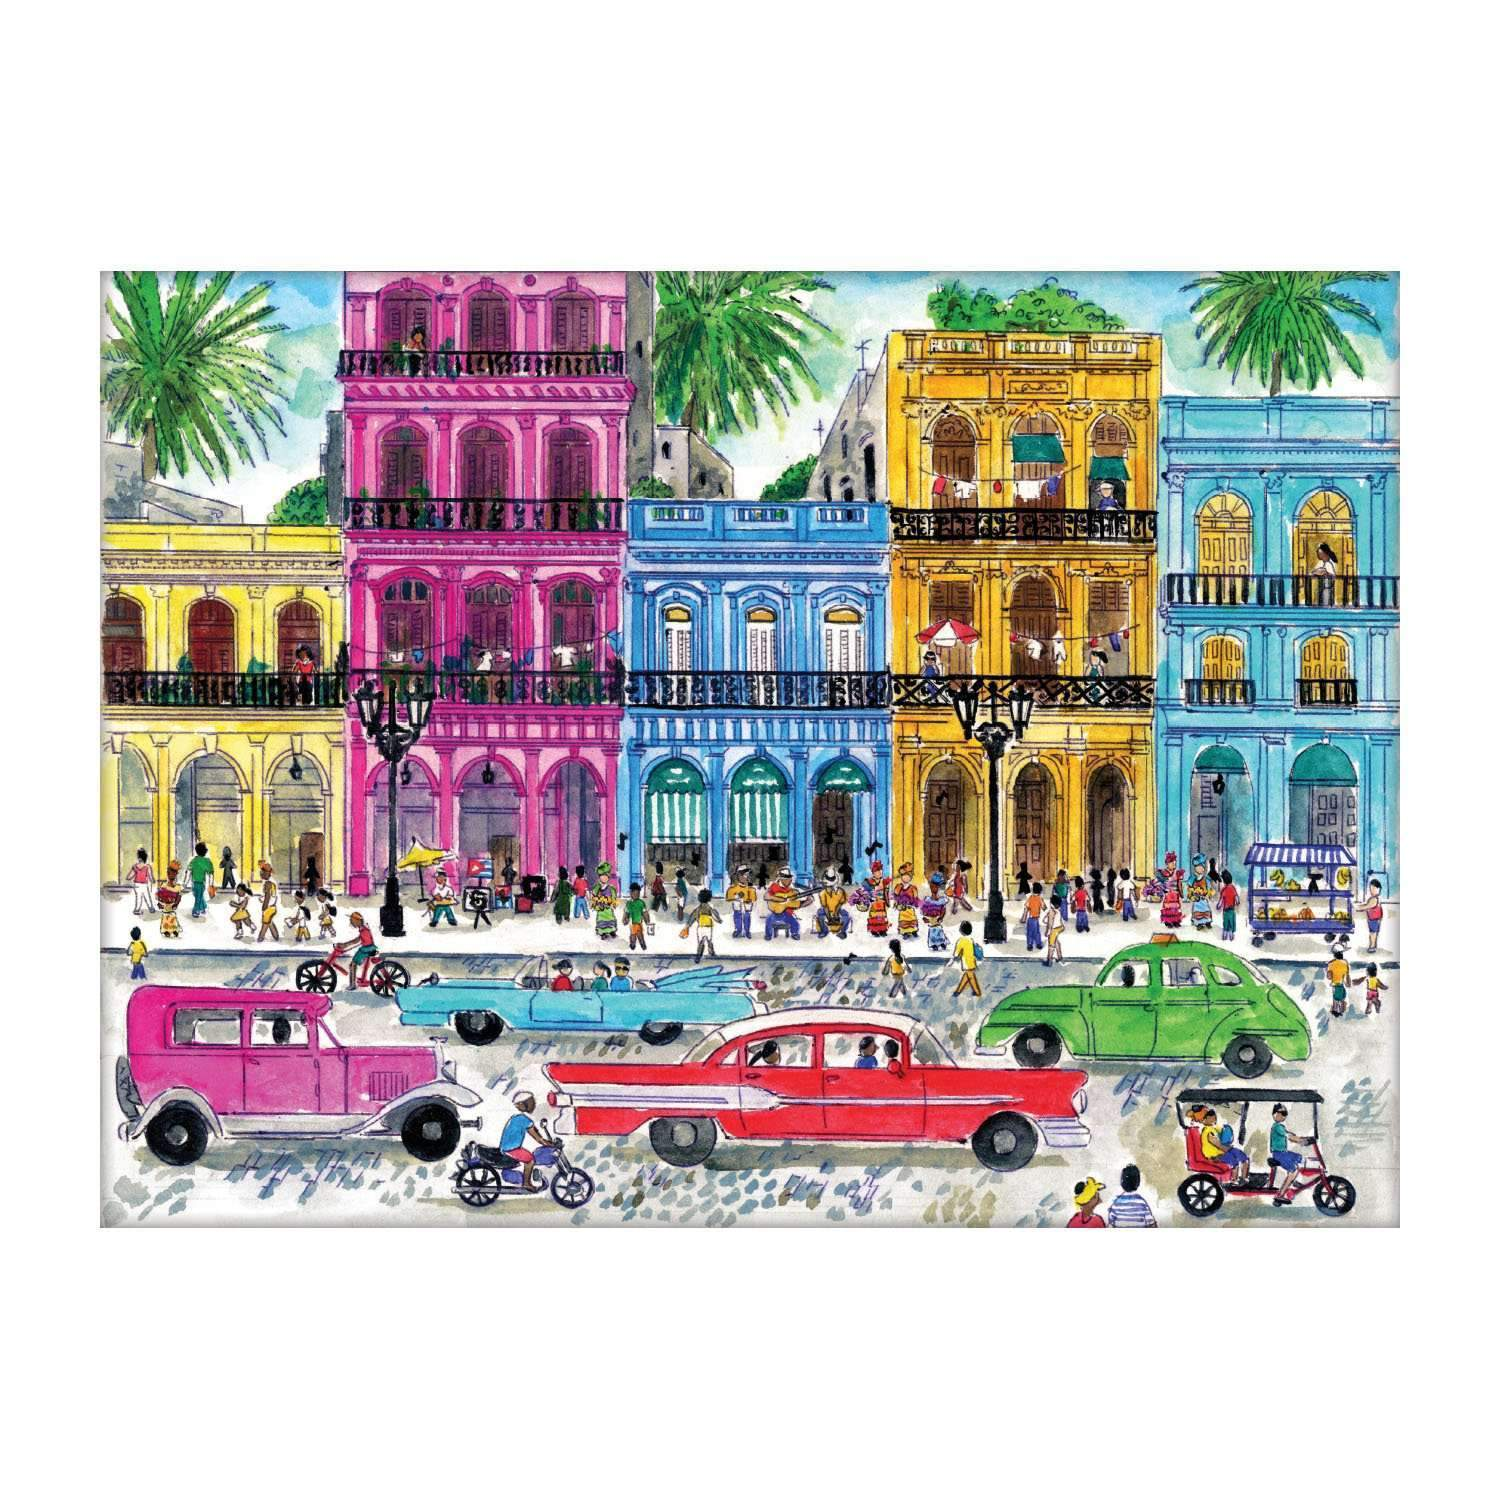 Puzzles for Adults Beauty and Warm Gift Teens and Family Seniors 2 Sets 500 Pieces Jigsaw Puzzles Intellectual Landscape Puzzles Educational Jigsaws